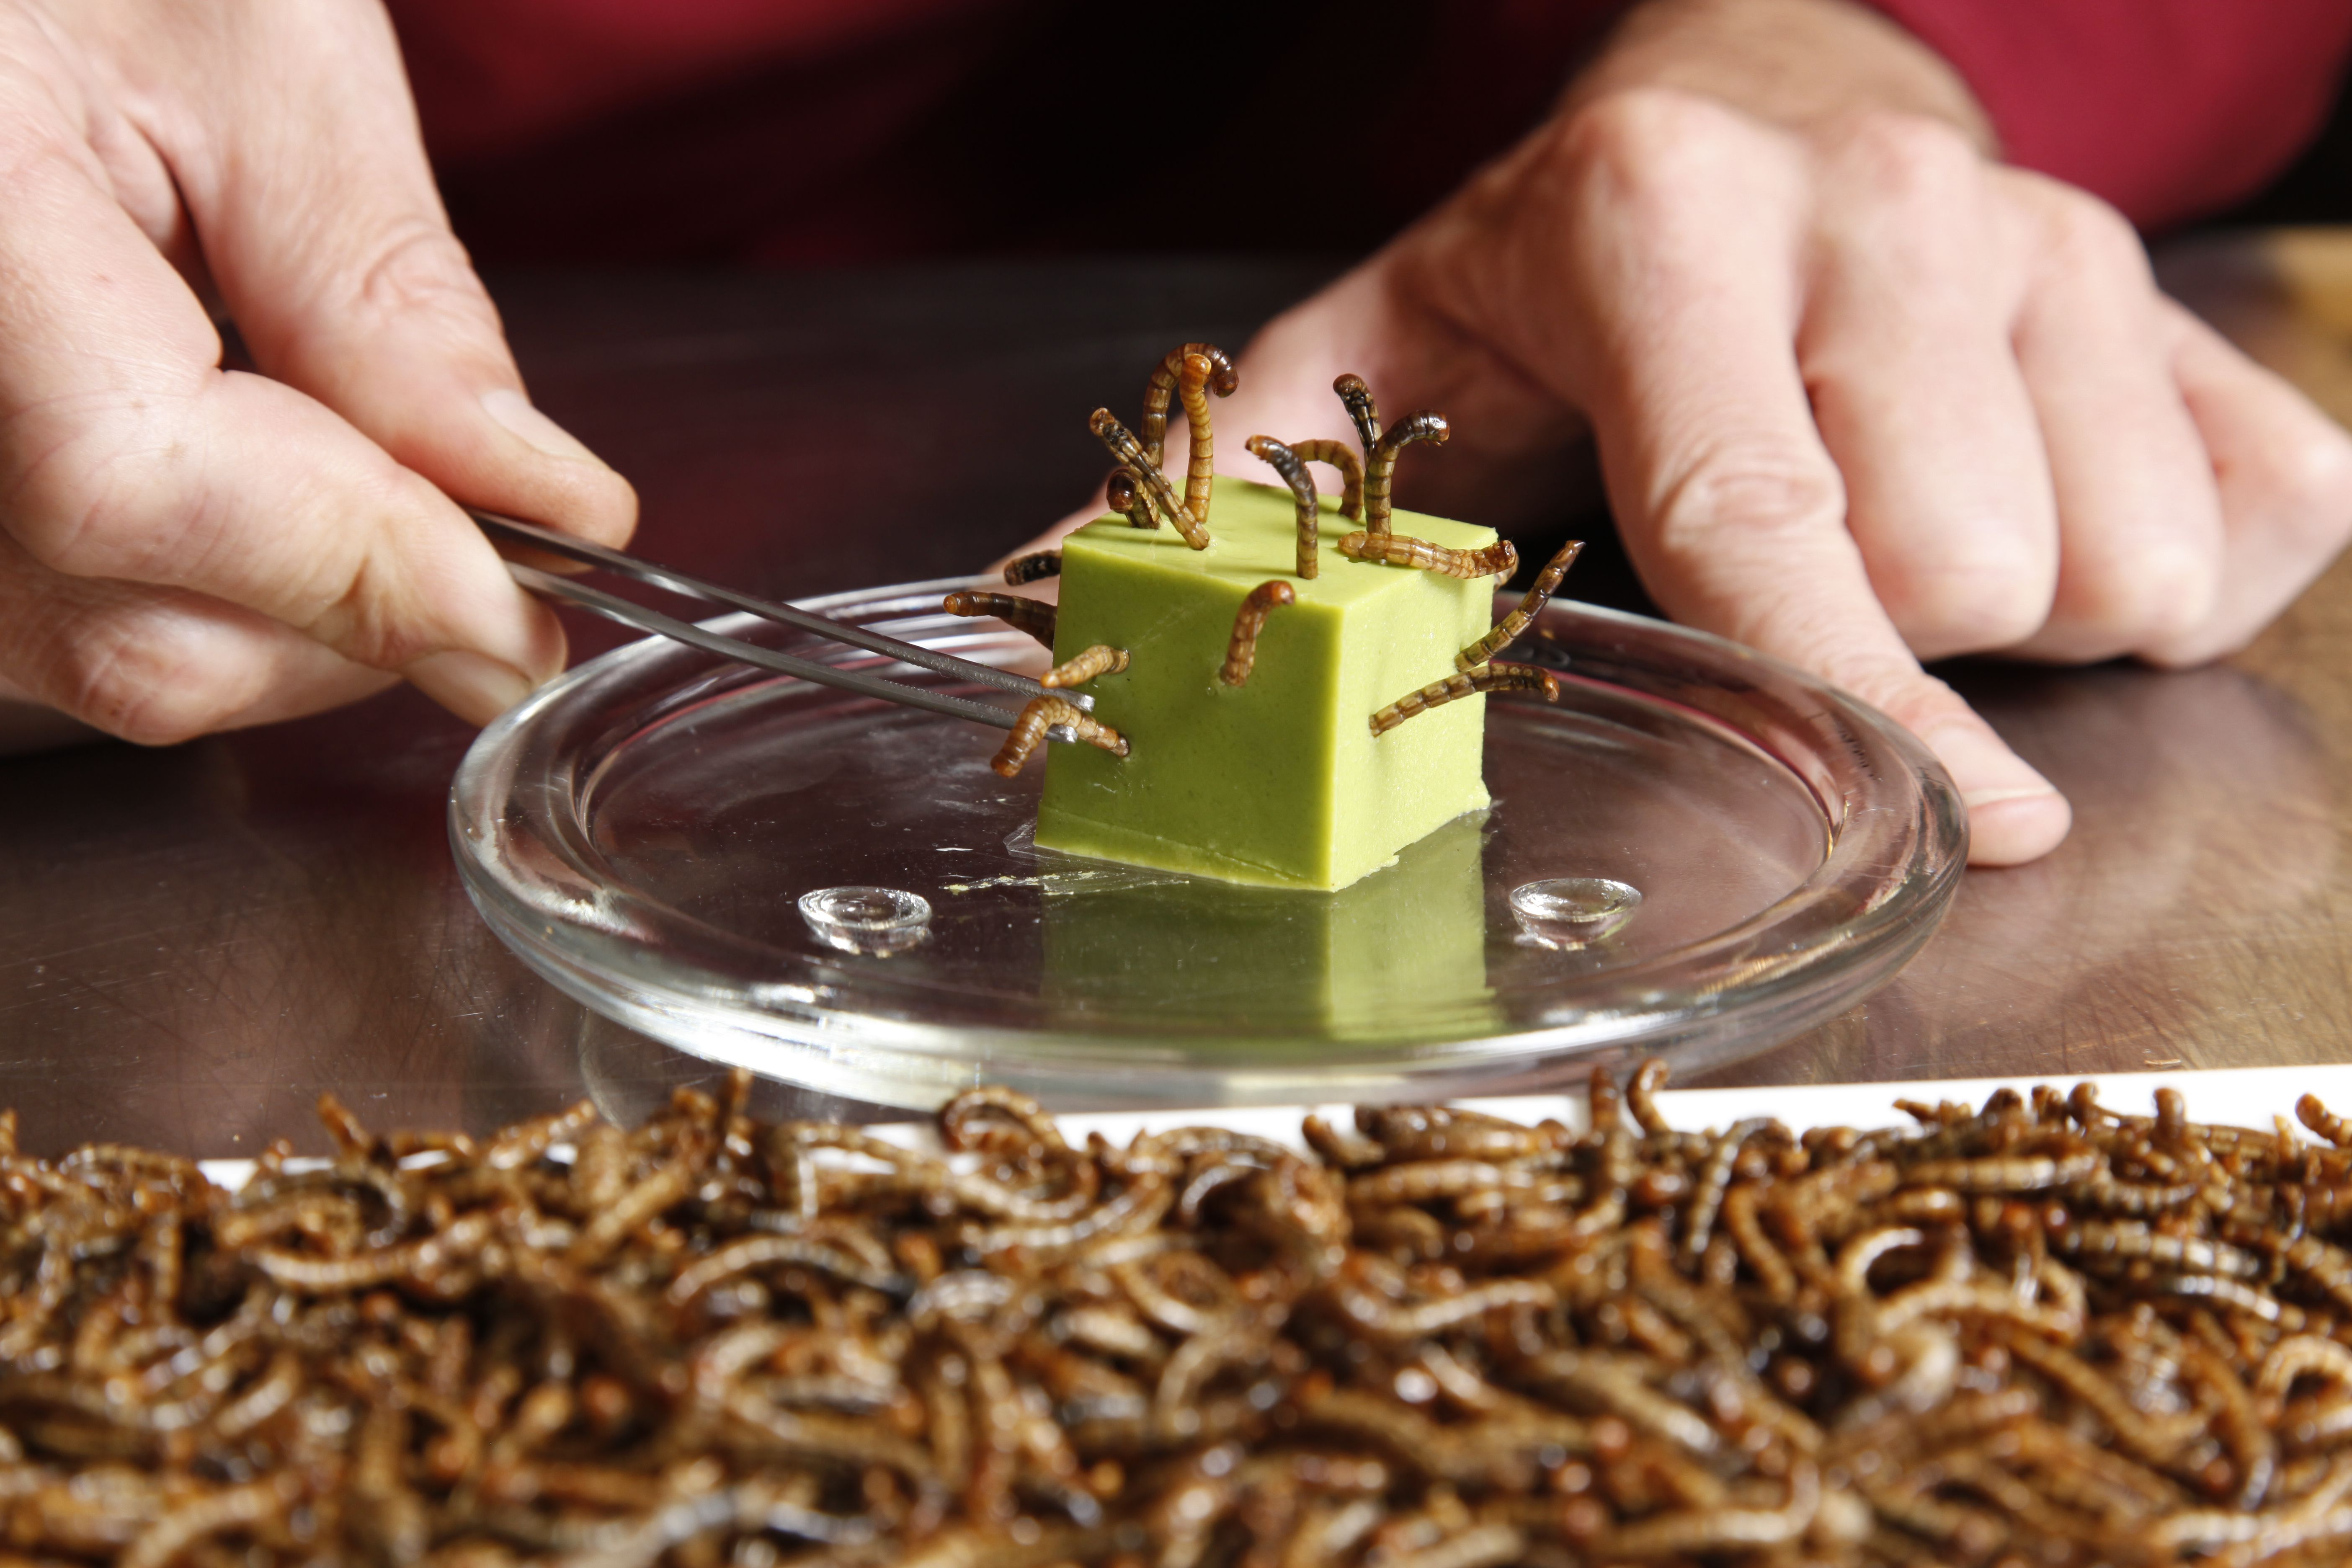 Mealworms are readily available as food for human consumption.